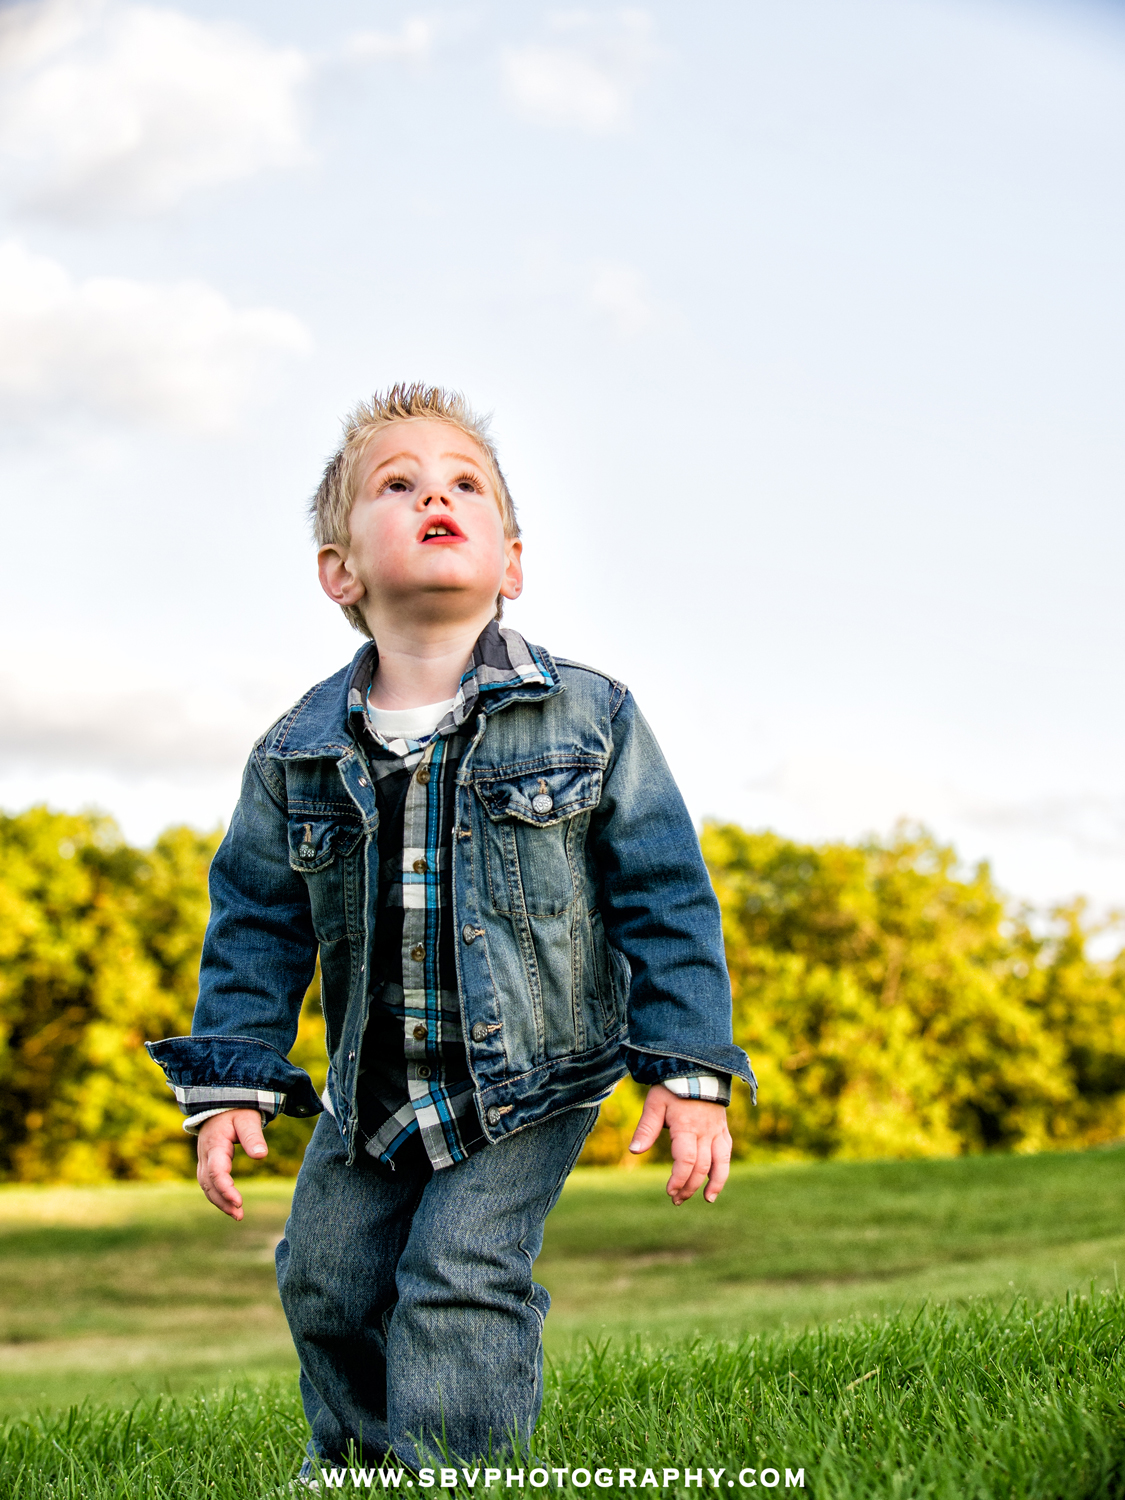 a little boy looks up toward the sky in wonderment as he is captured during a Lifestyle Portrait Session in Griffith, Indiana.